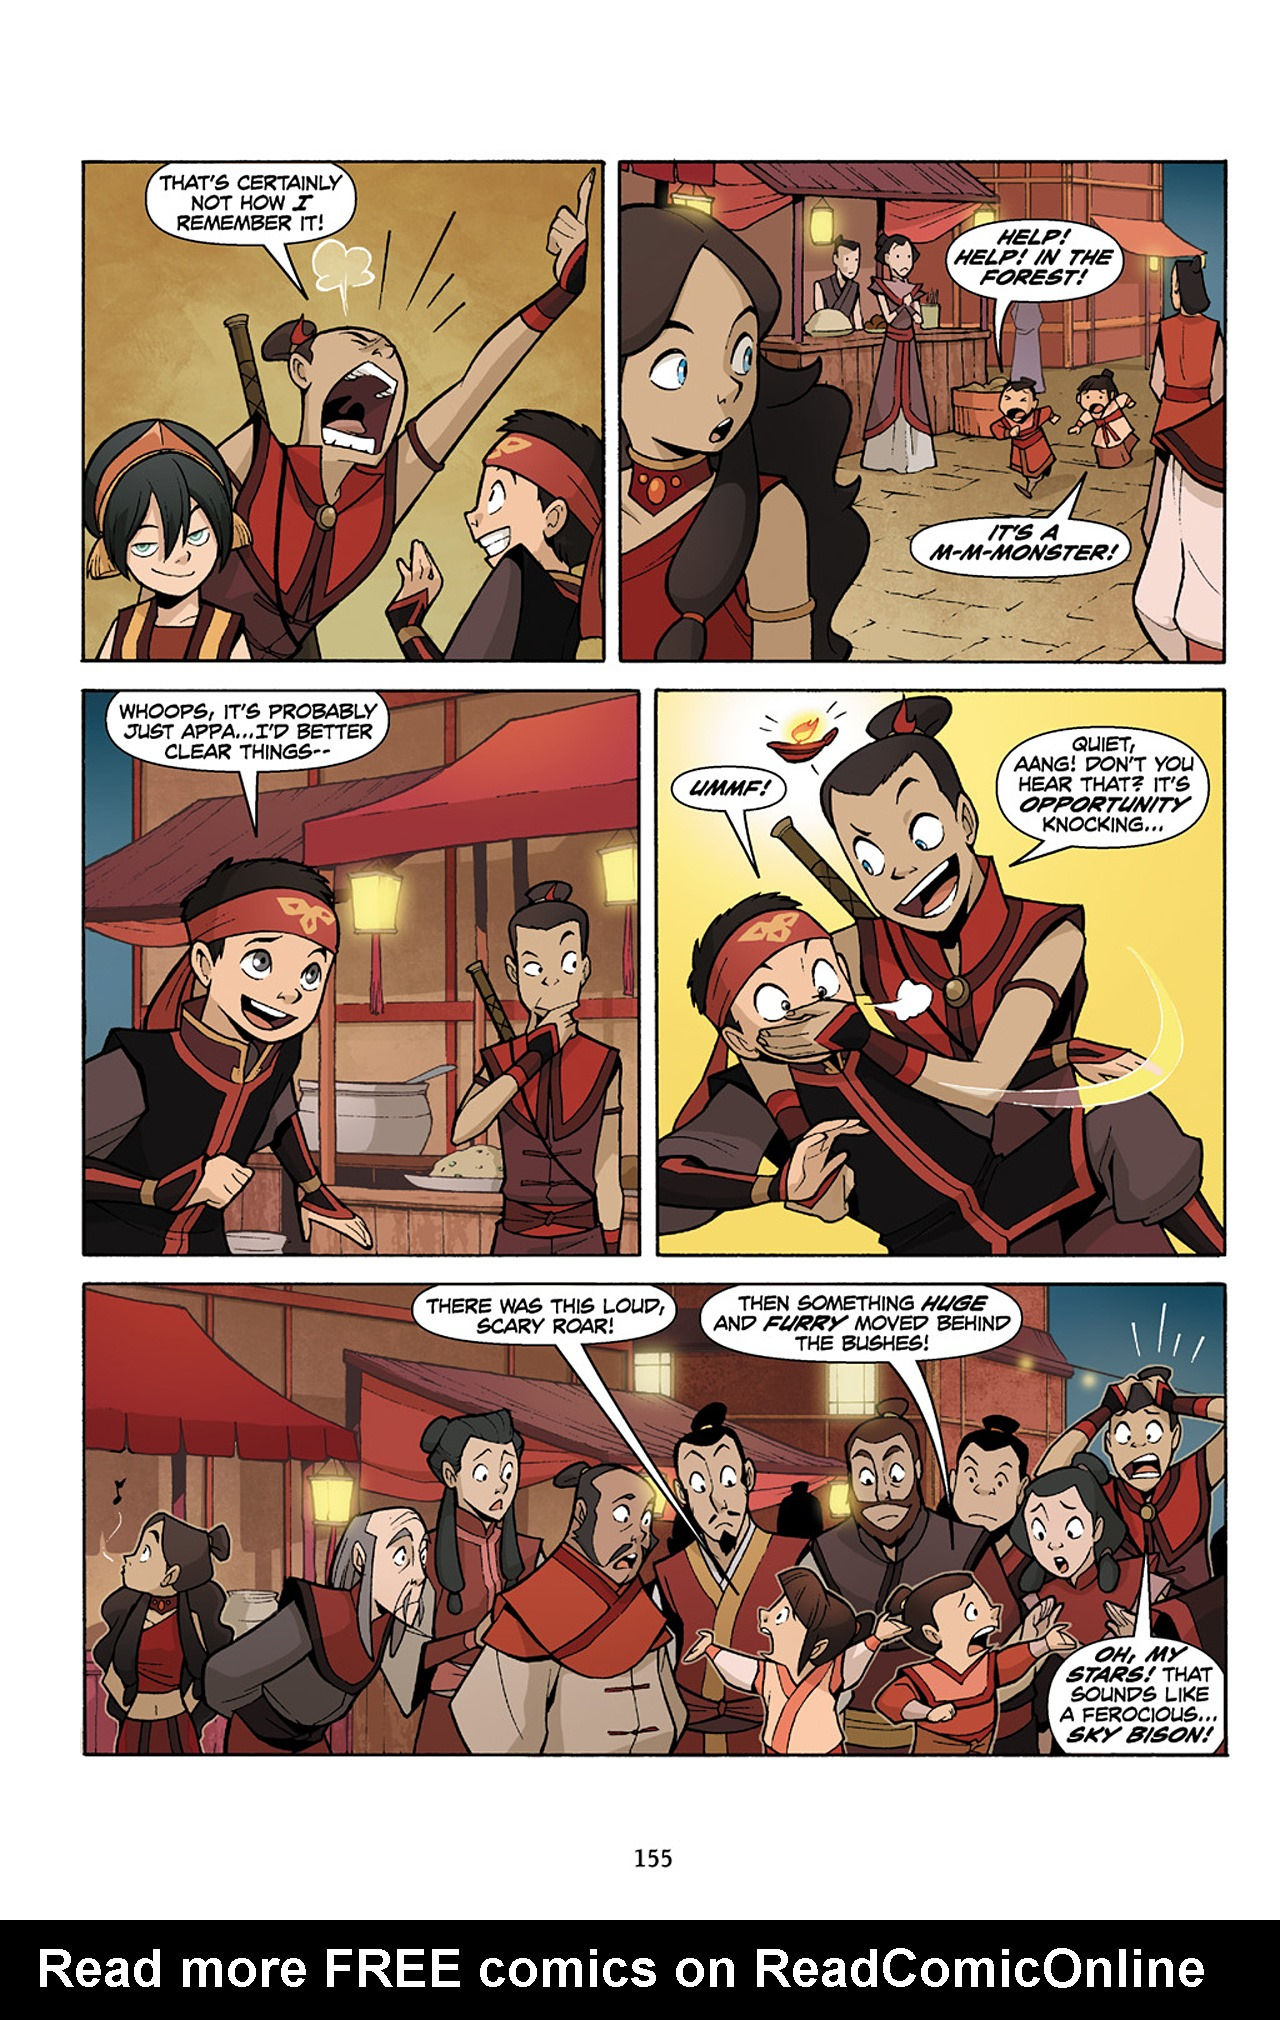 Nickelodeon Avatar: The Last Airbender - The Lost Adventures chap full pic 156